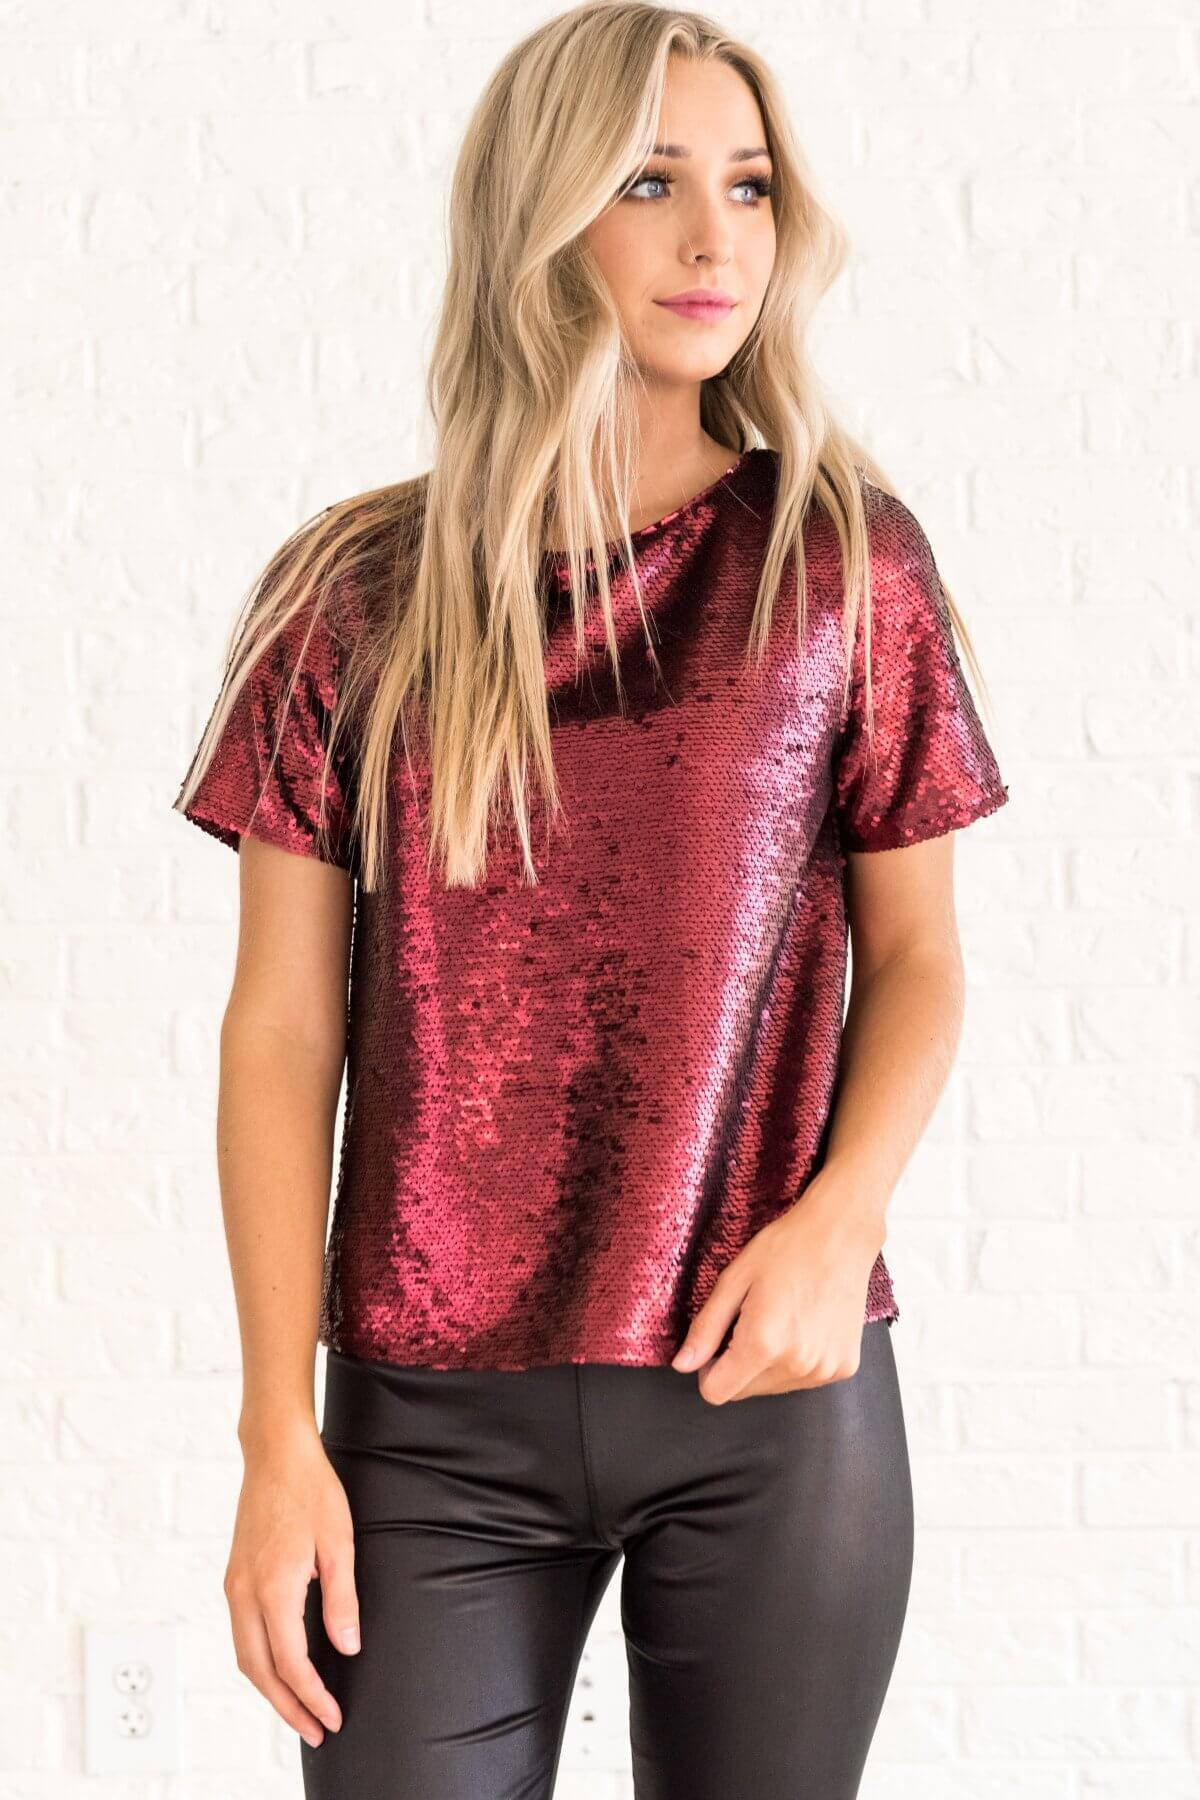 Burgundy Red Sequin Boutique Tops Affordable Online Boutique